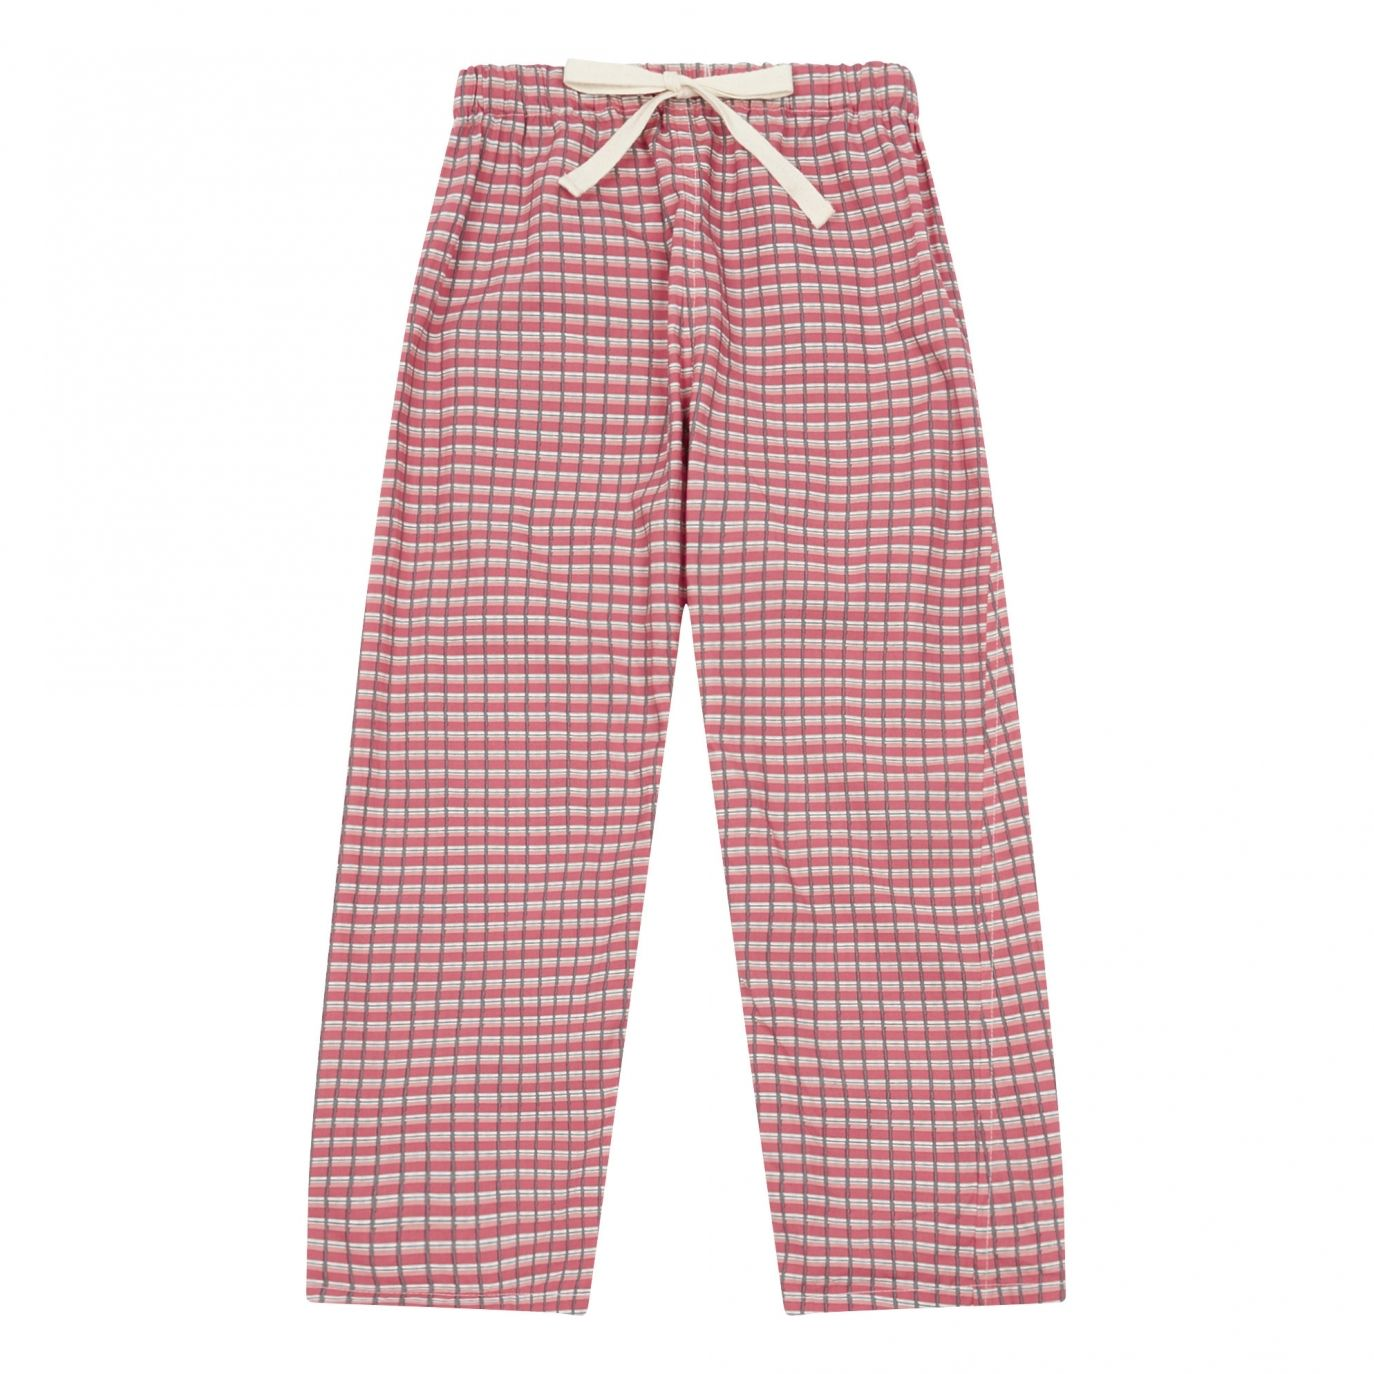 Caramel Baby & Child - Pantalon Chelsea rouge - 1